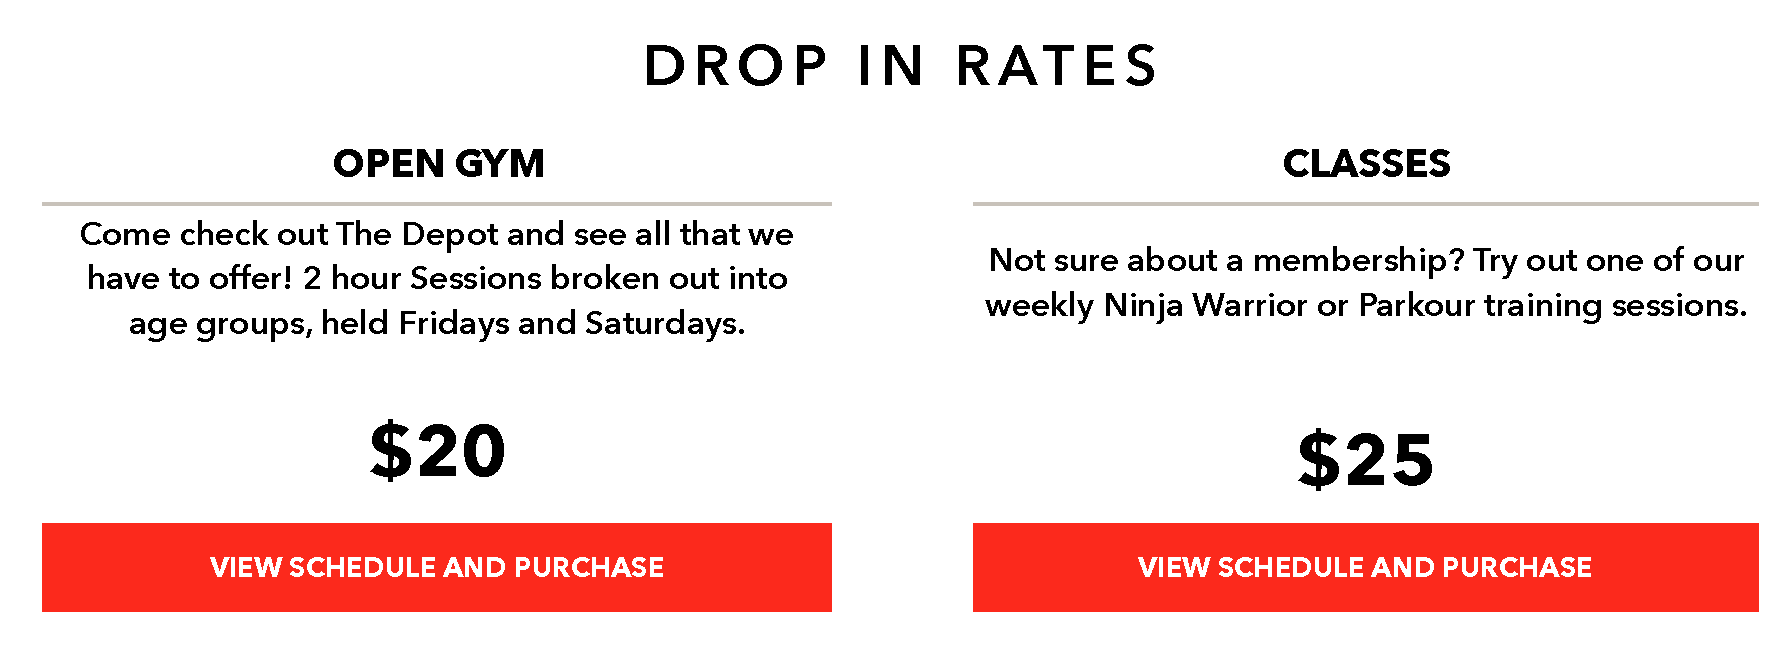 drop in rates.png